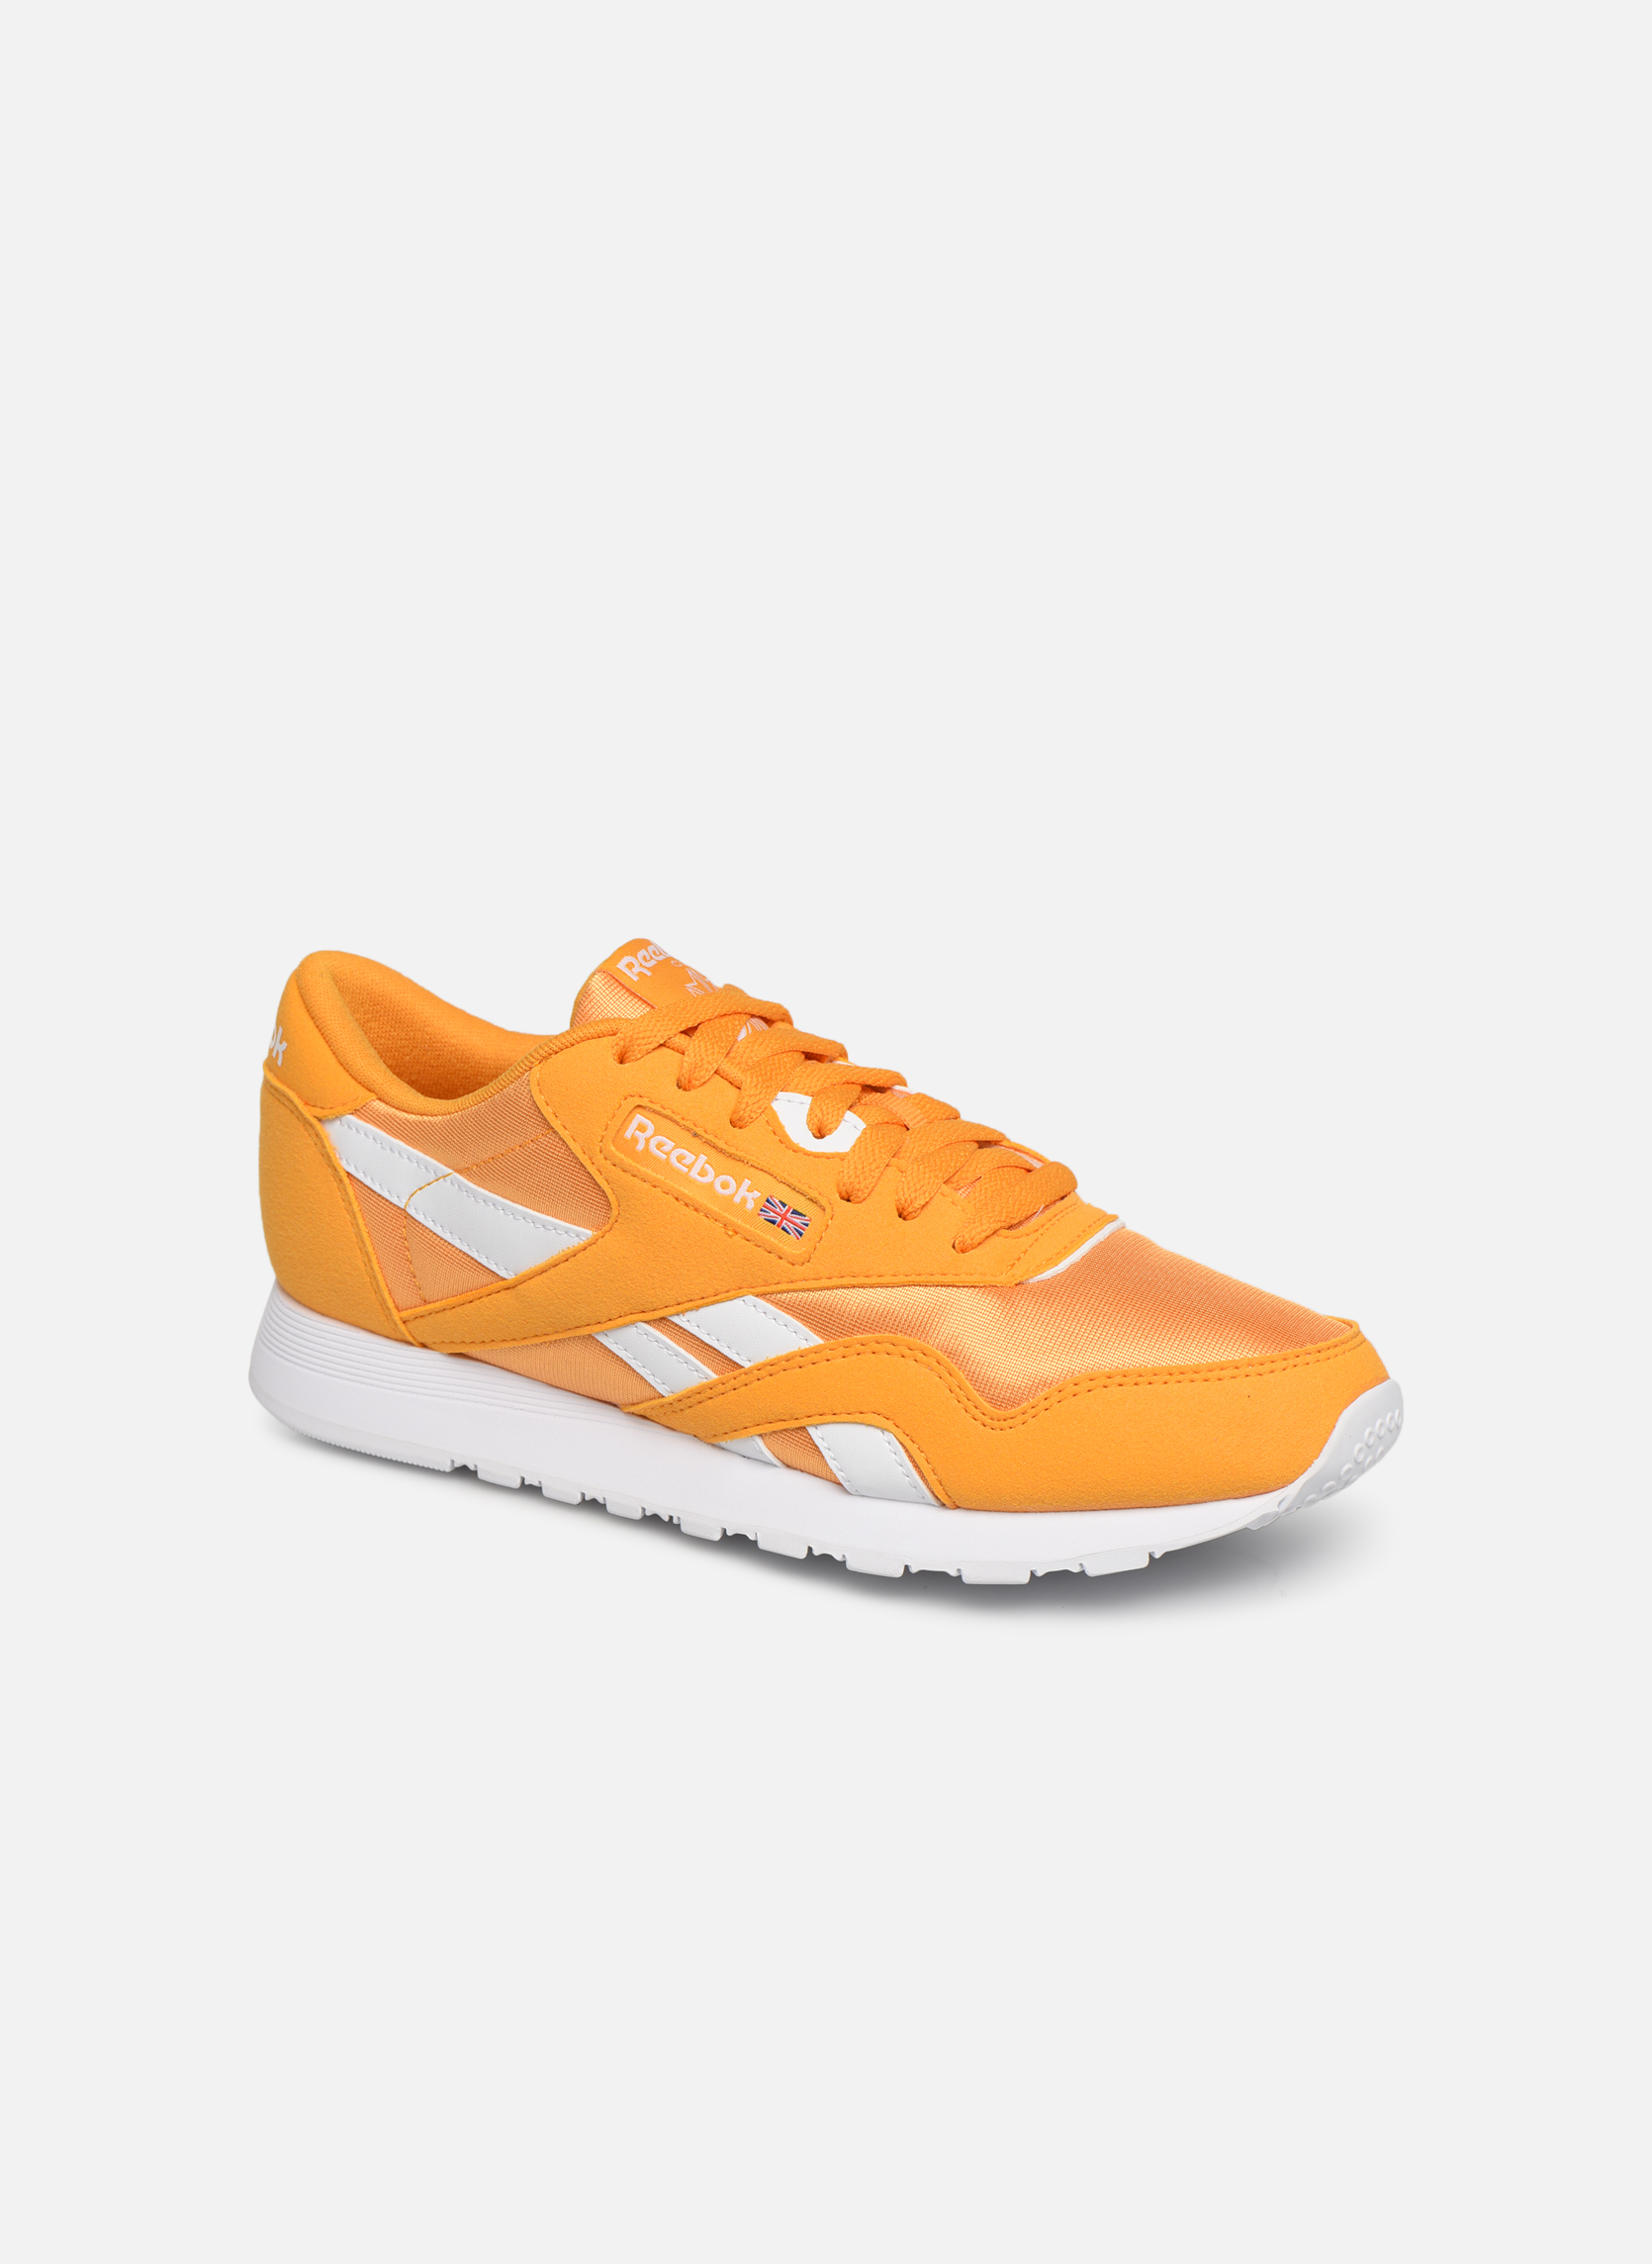 Sneakers Classic Leather Nylon Color by Reebok